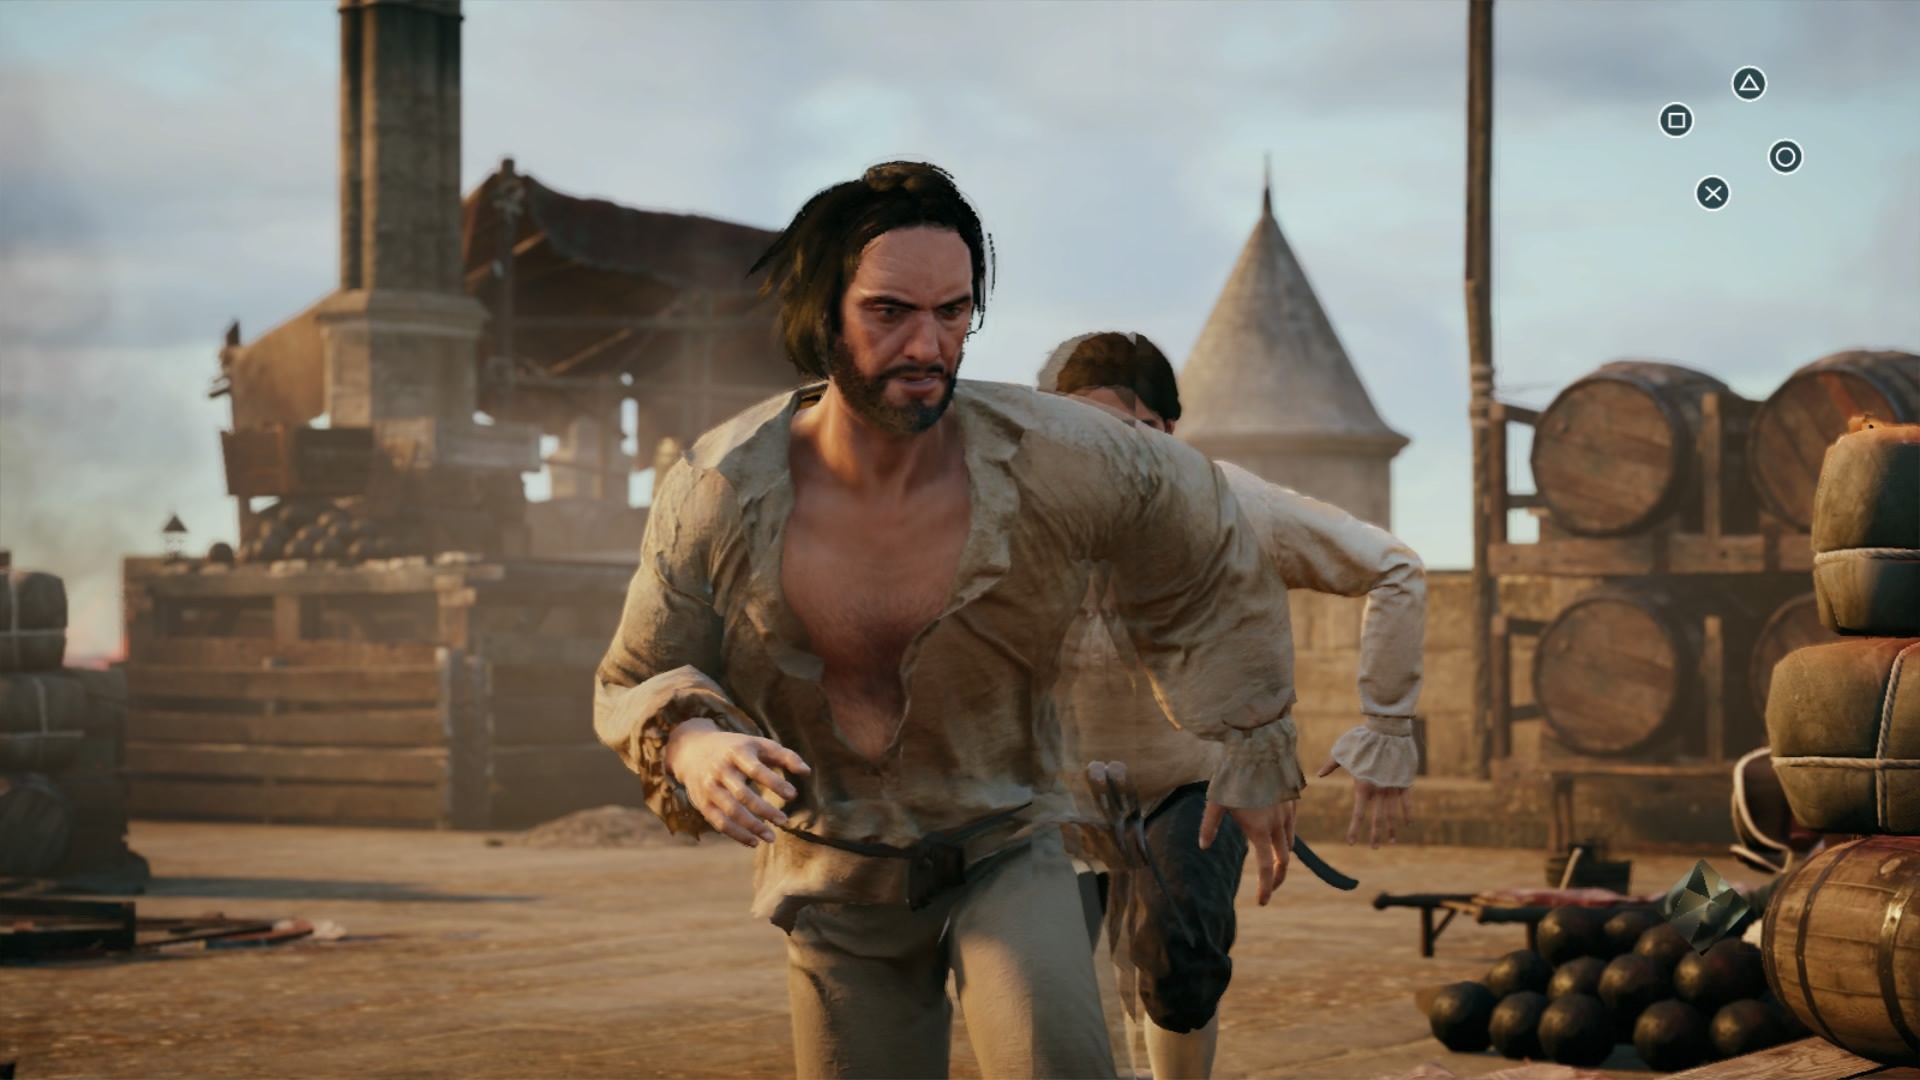 In-game obrázky z Assassin's Creed: Unity 101851